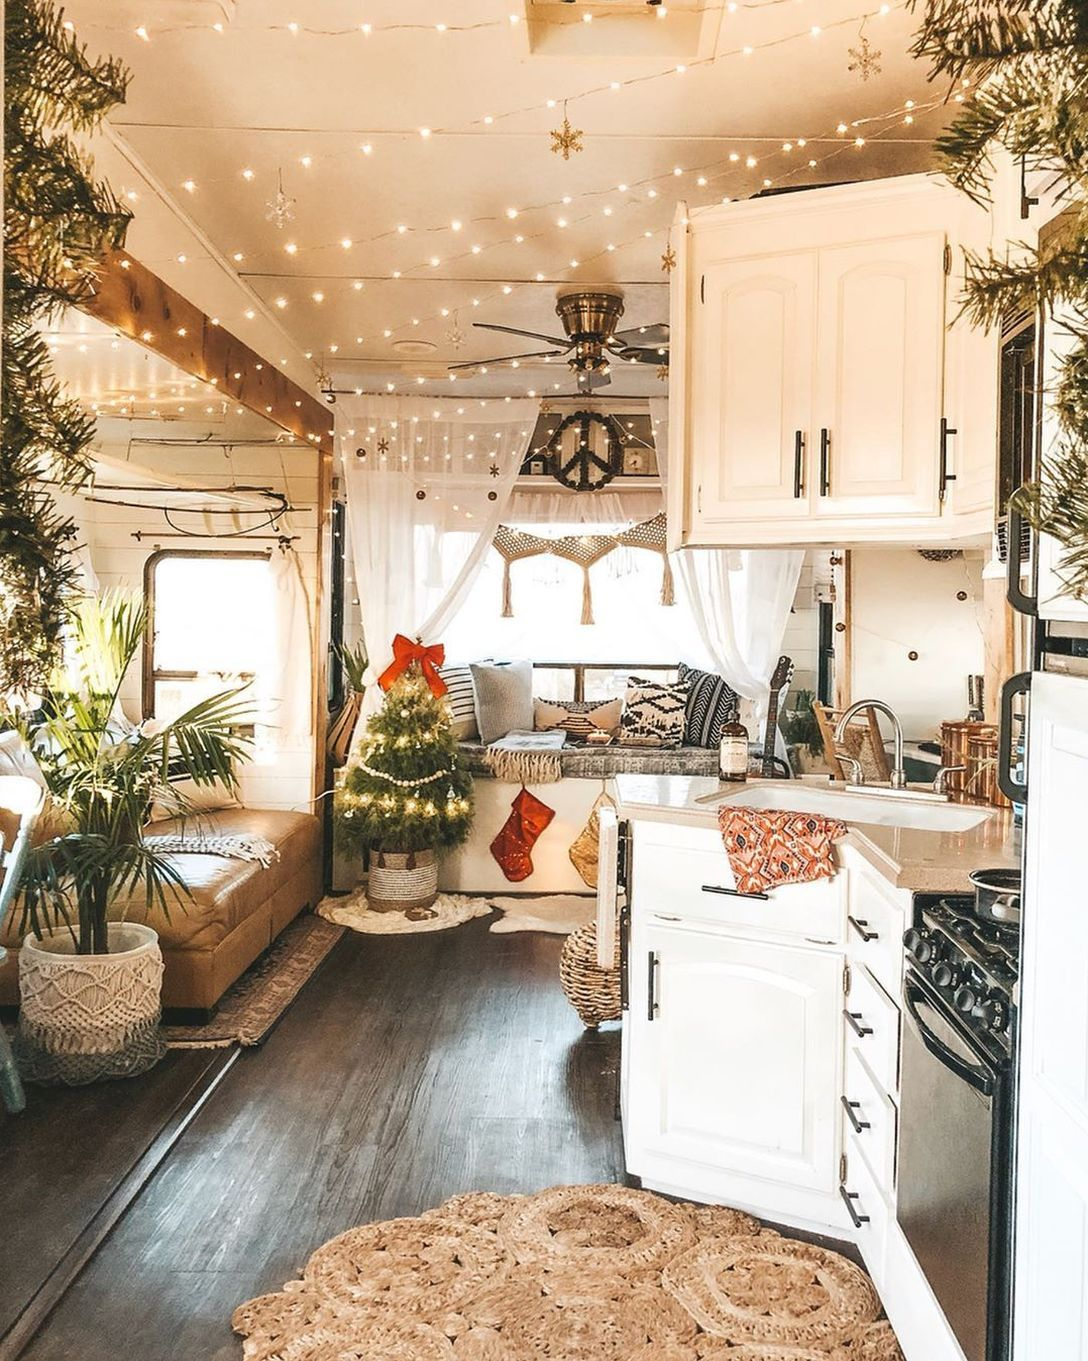 23 Travel Trailers Decorating Ideas In 2020 Tiny Living Trailer Decor Tiny House Living